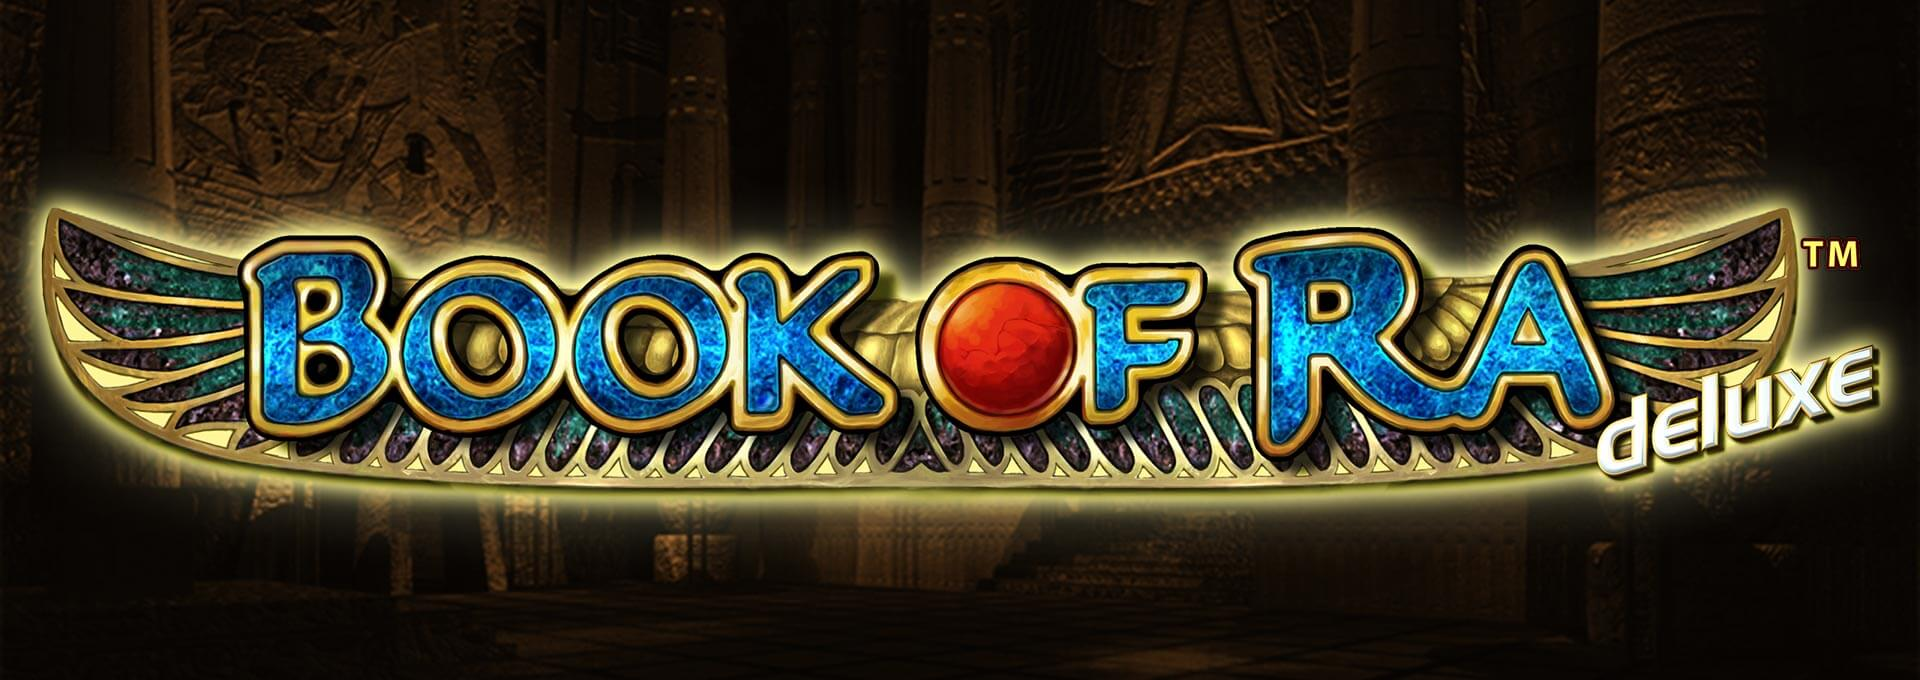 casino roulette online book of ra slots